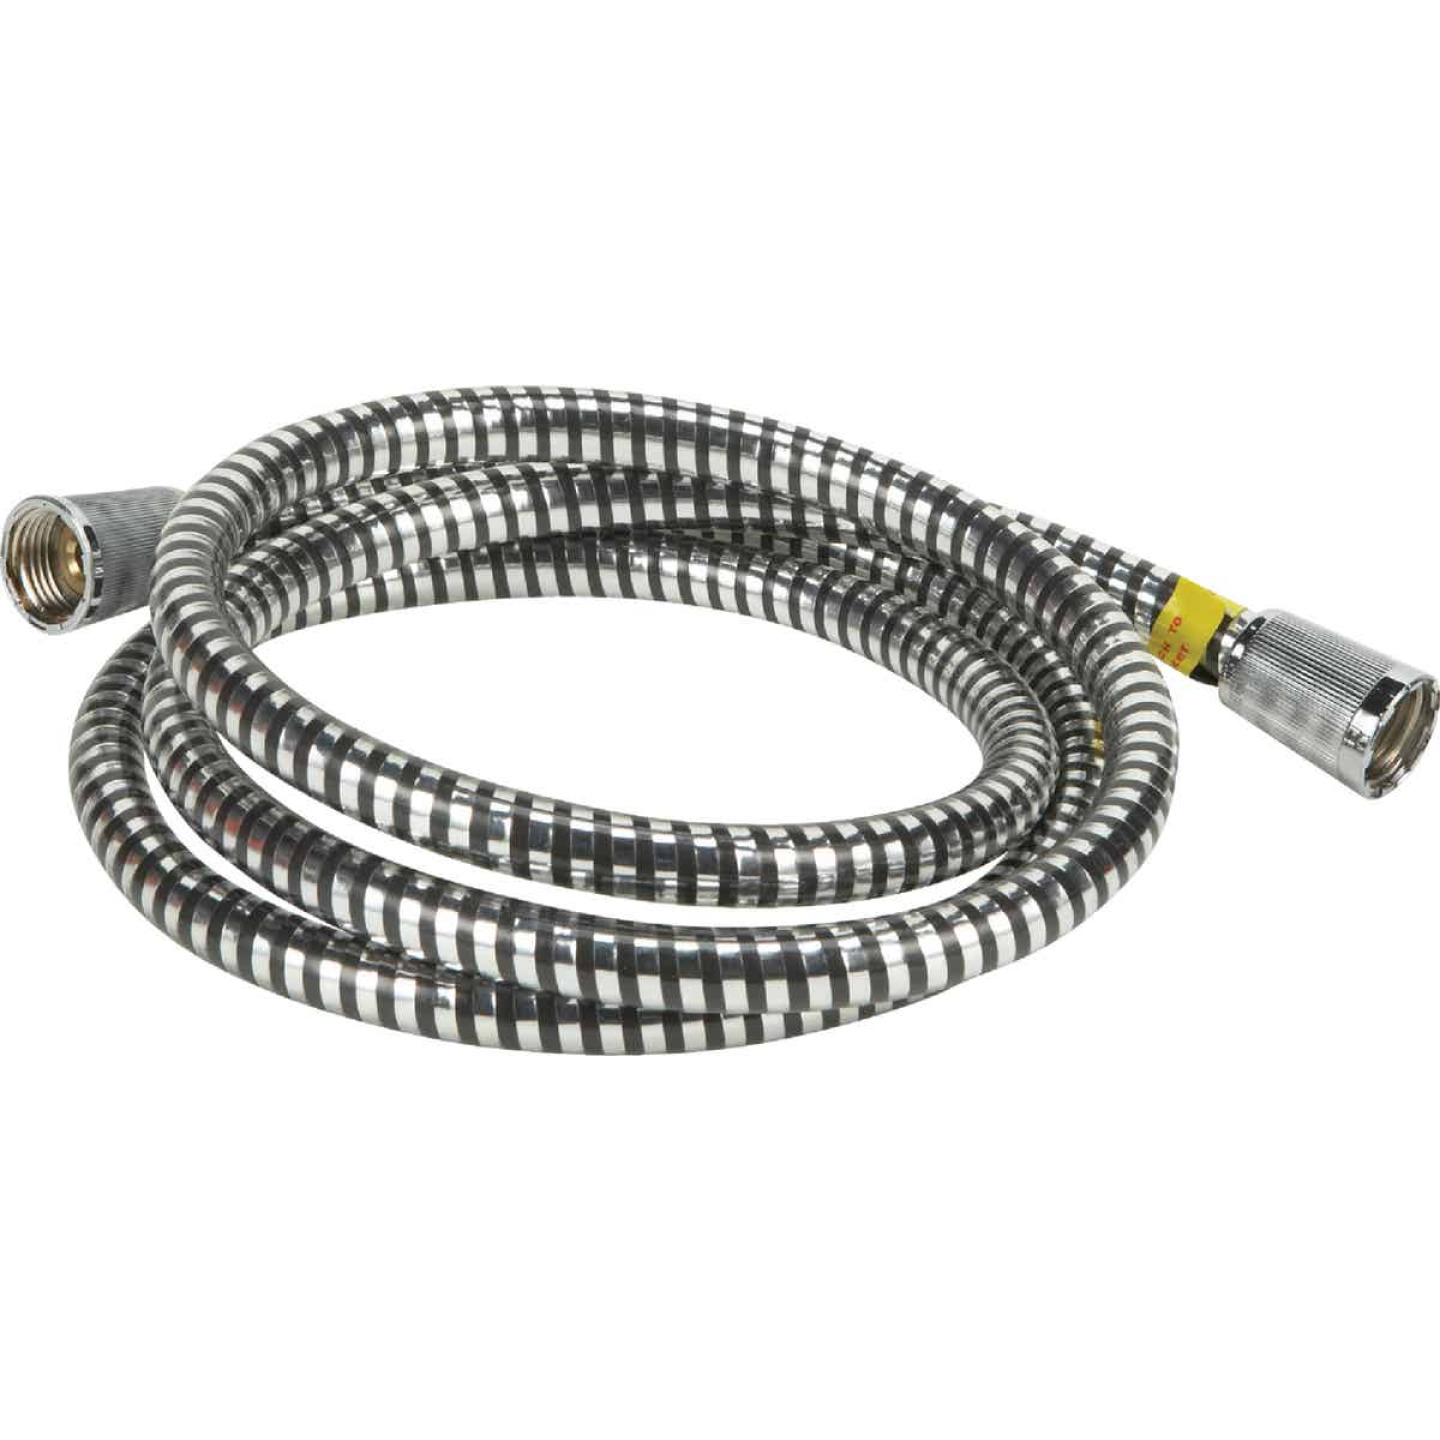 Home Impressions Chrome 7 Ft. Shower Hose Image 1